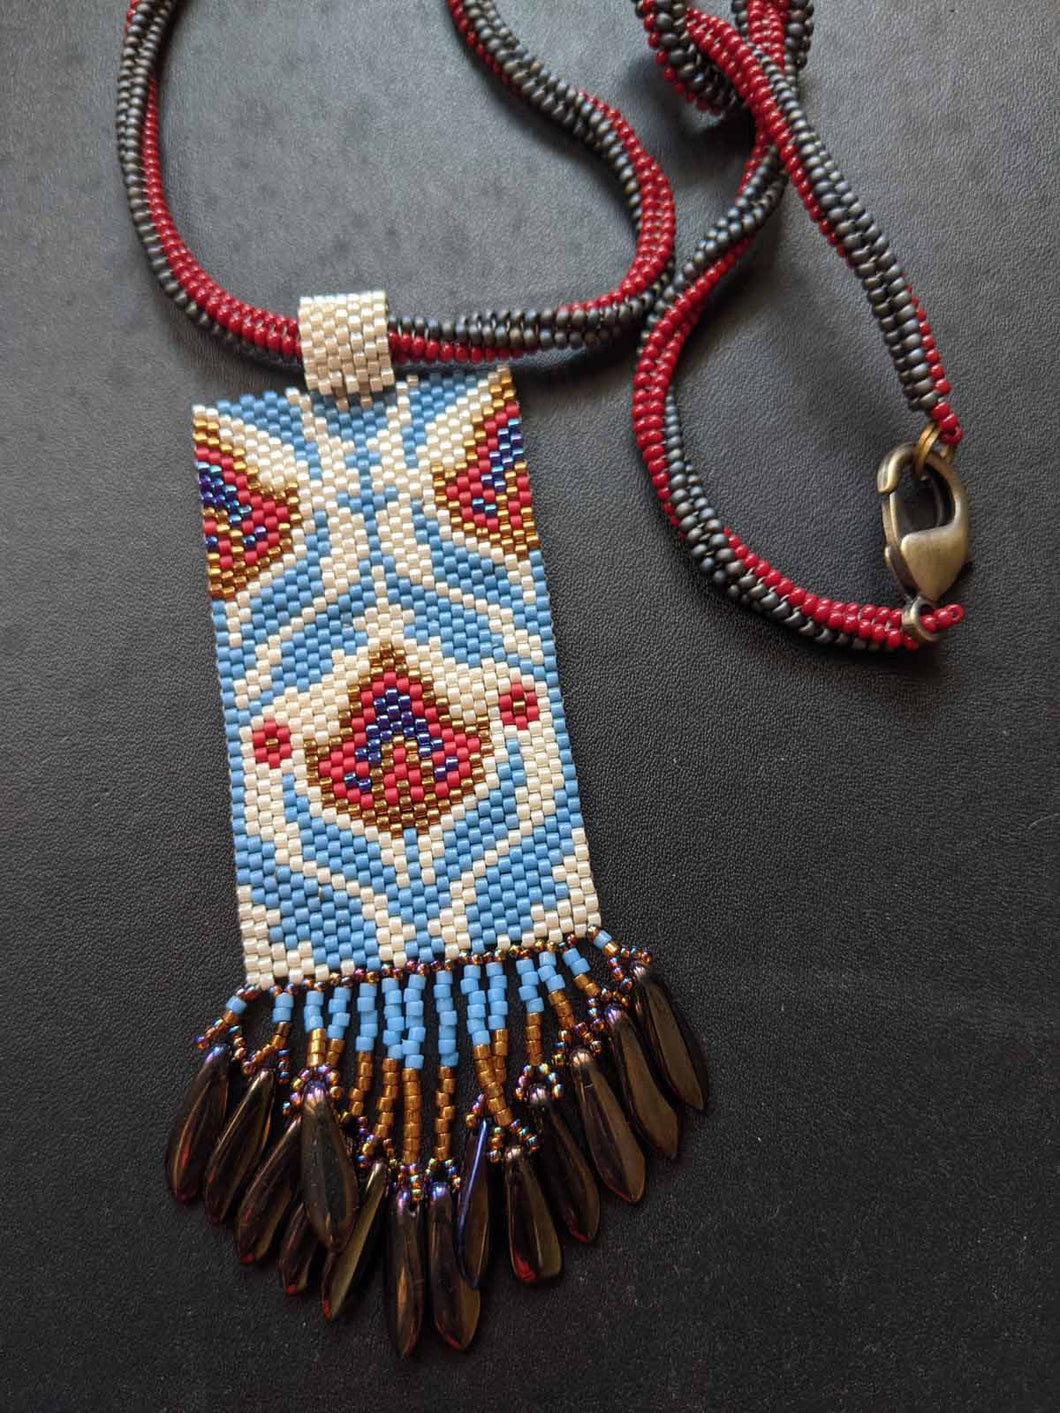 Handmade Beaded Necklace - Blue & Red Floral Fringe